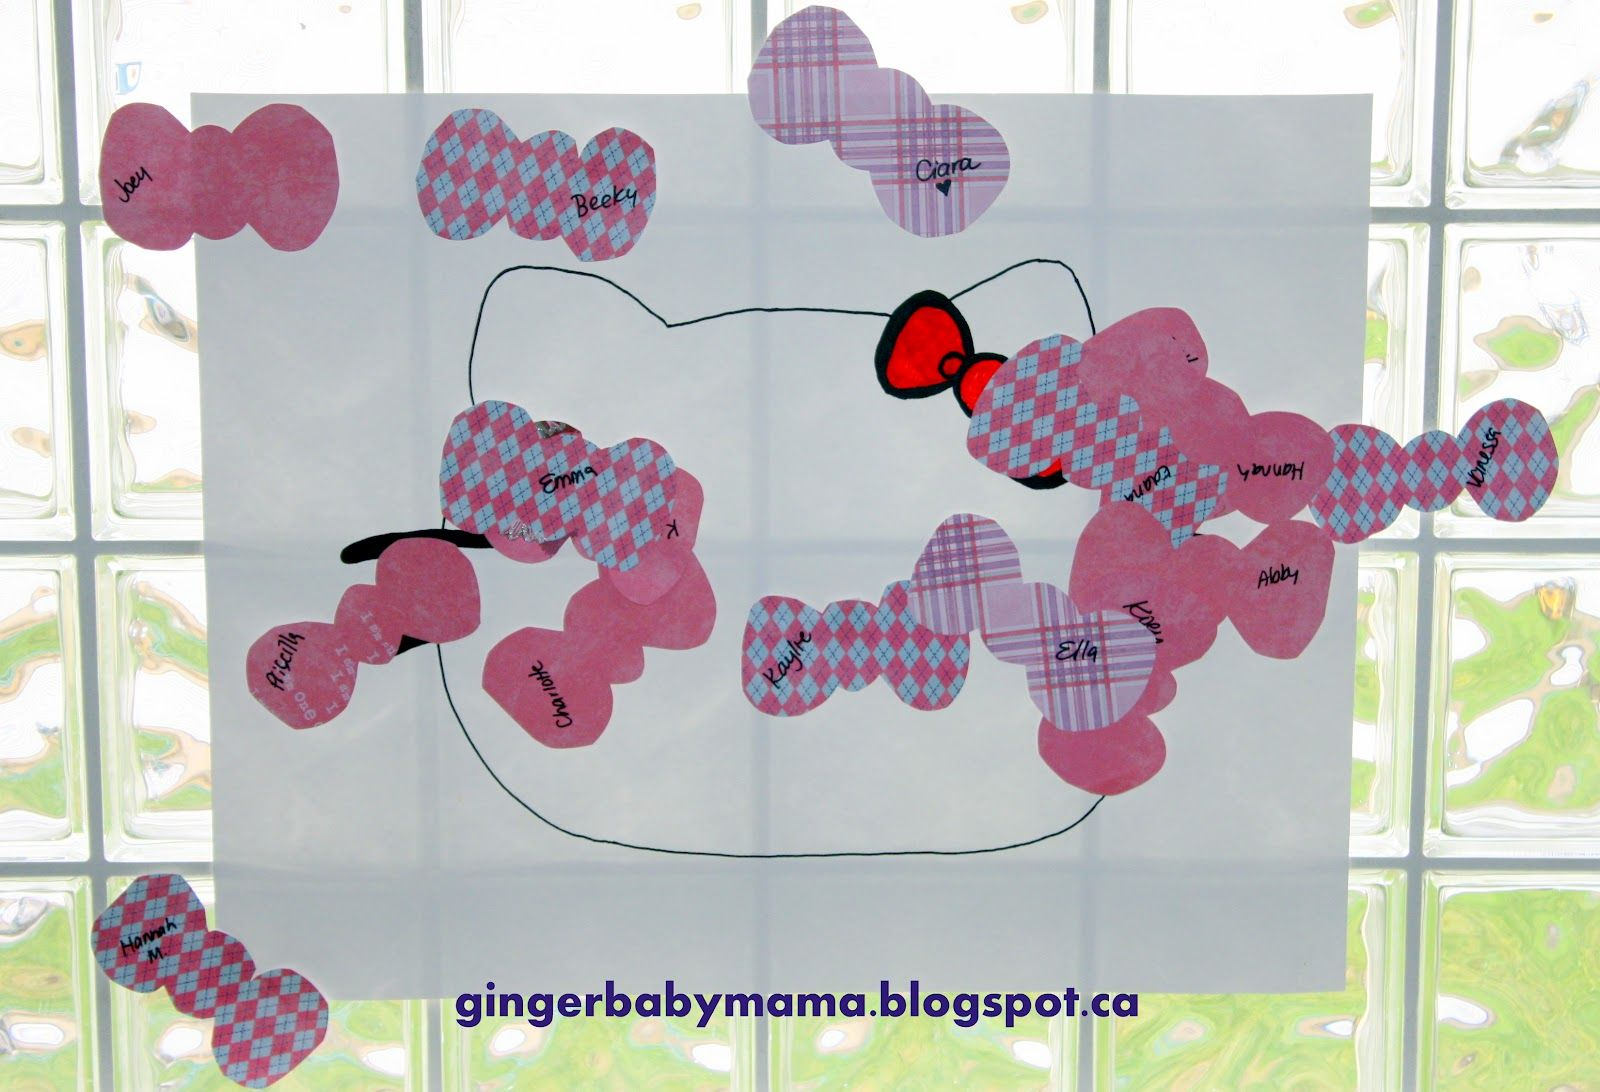 Pin the Bow on Hello Kitty -Hello Kitty Cupcake Decorating Party Ideas - GingerBabyMama